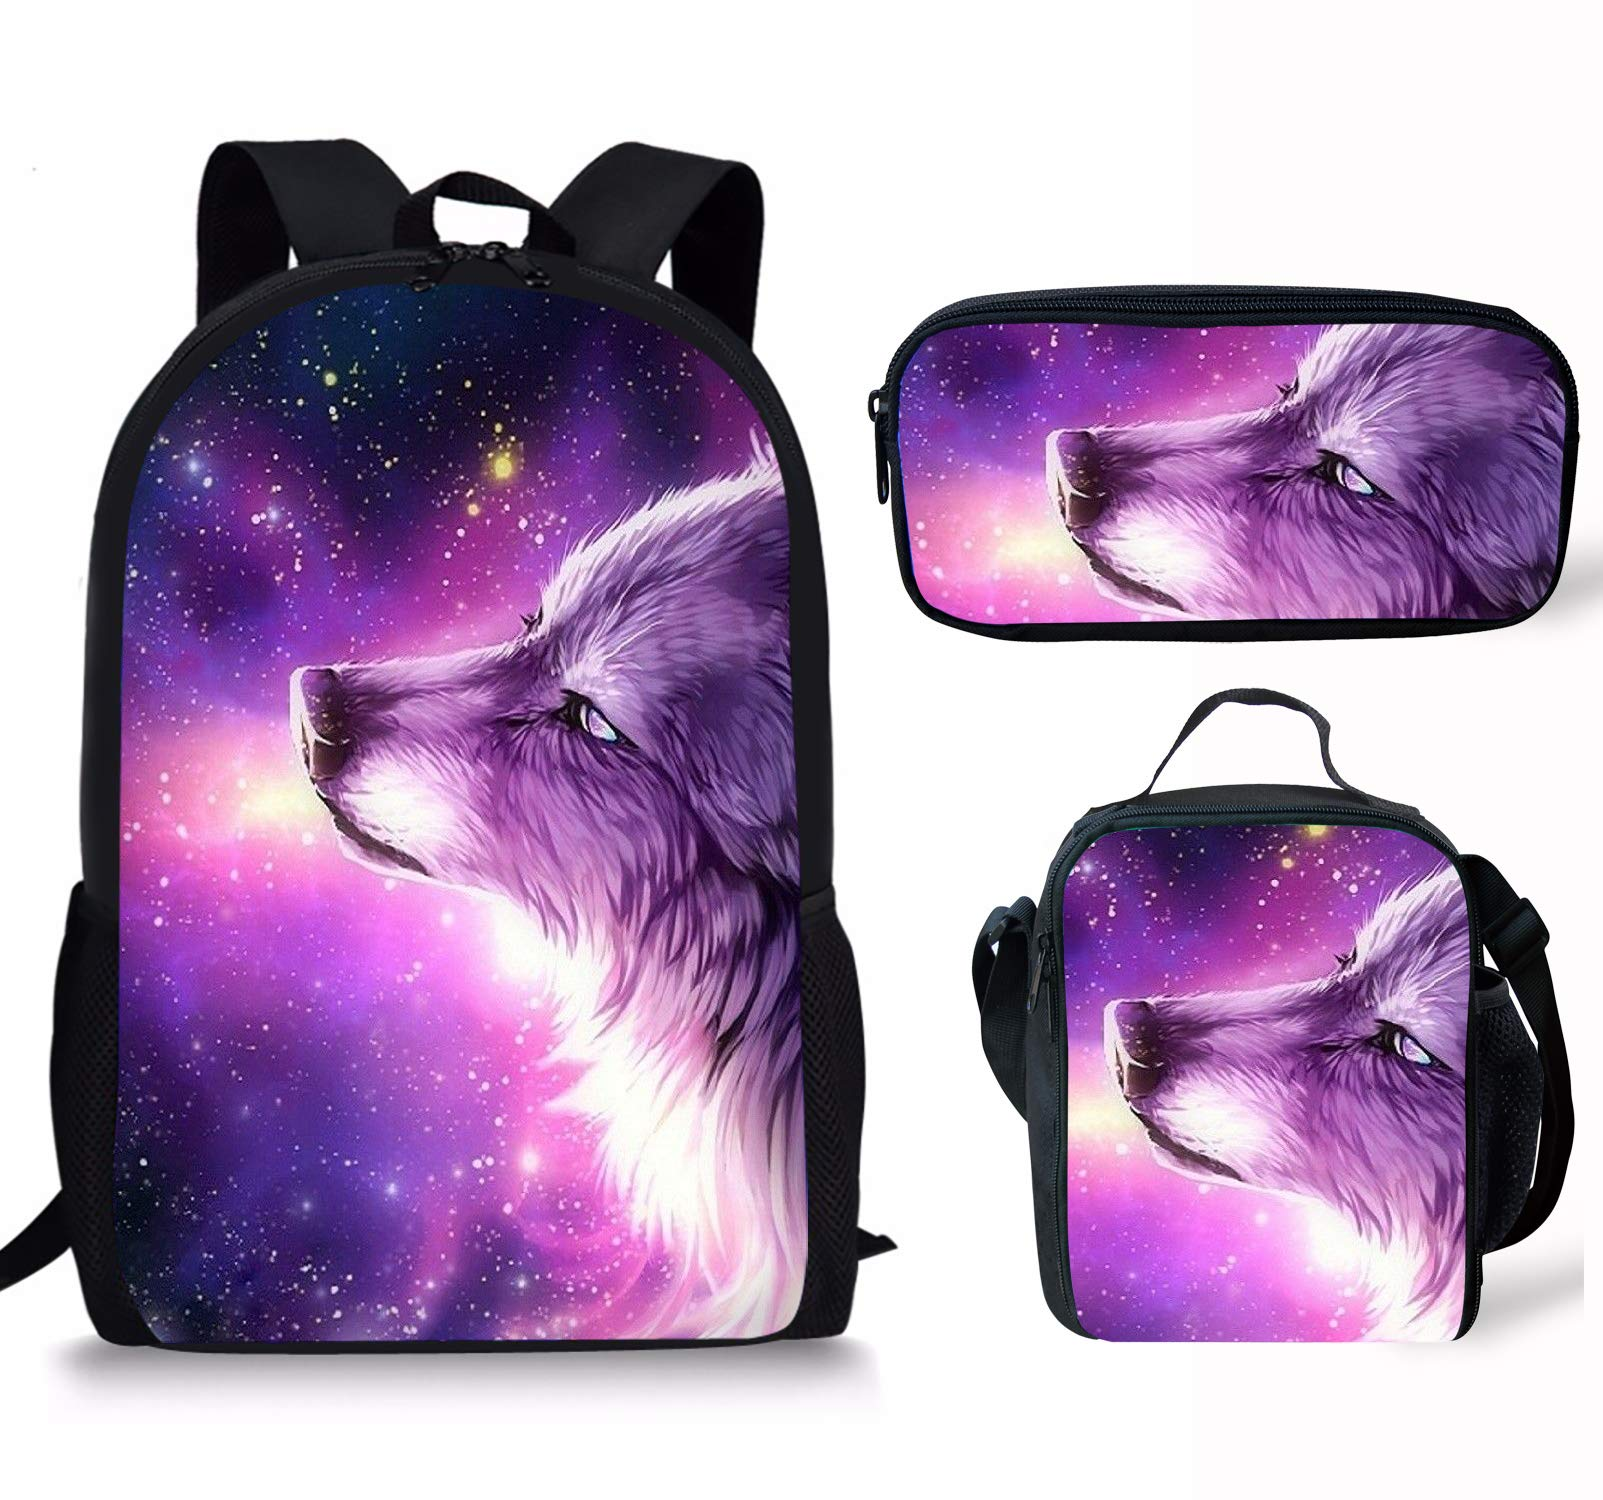 Micandle Animal School Backpack Lunch Bag Pencil case Set with Padded Straps for Boys Girls School Book Bags (Backpack Set Wolf 7)